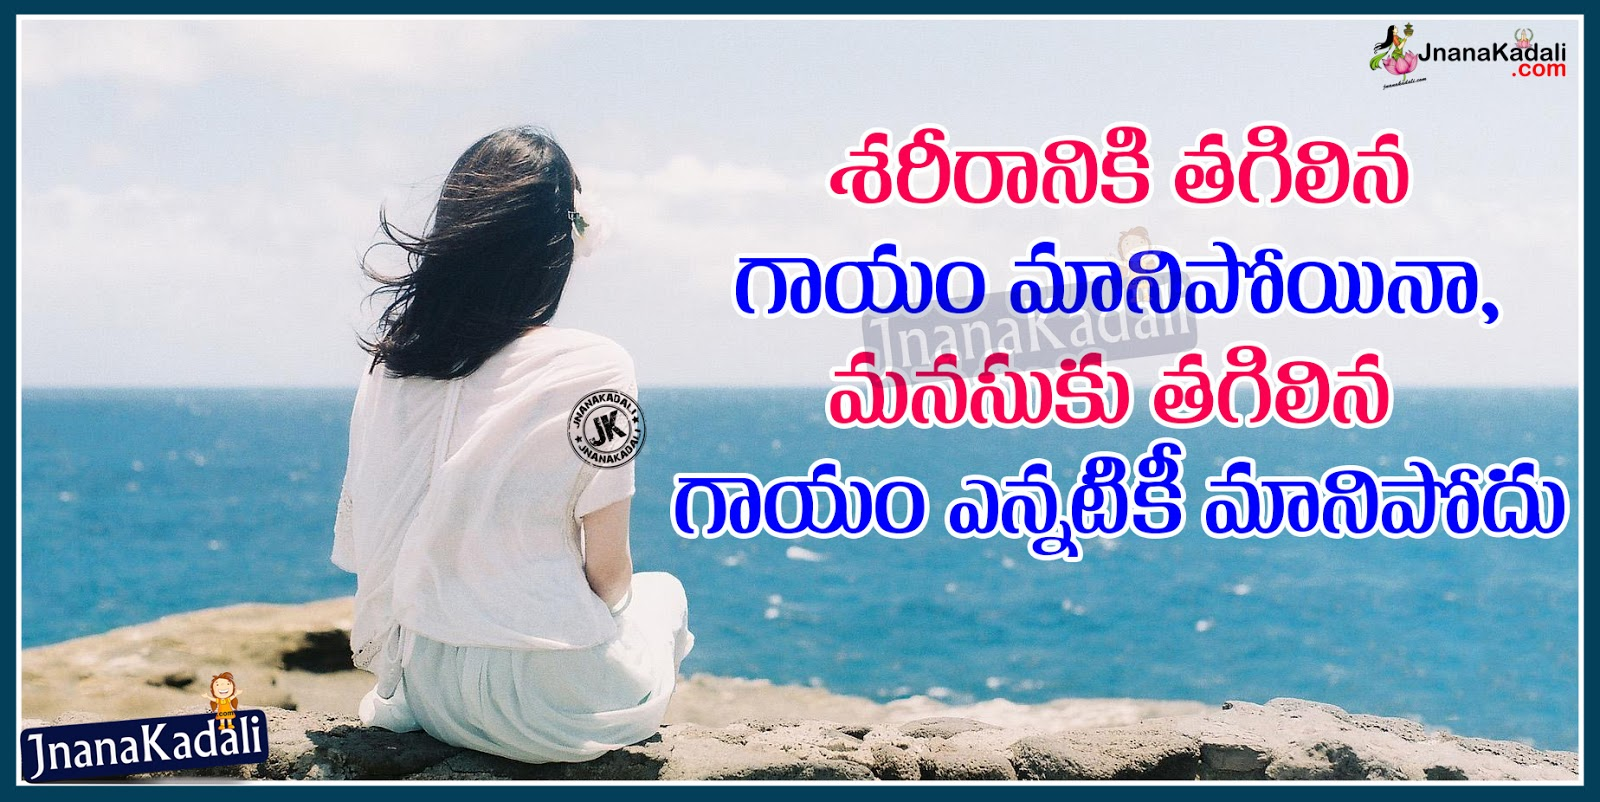 Sad Telugu Alone Death and Life Failure Quotes Great Love Failure Quotations and Best